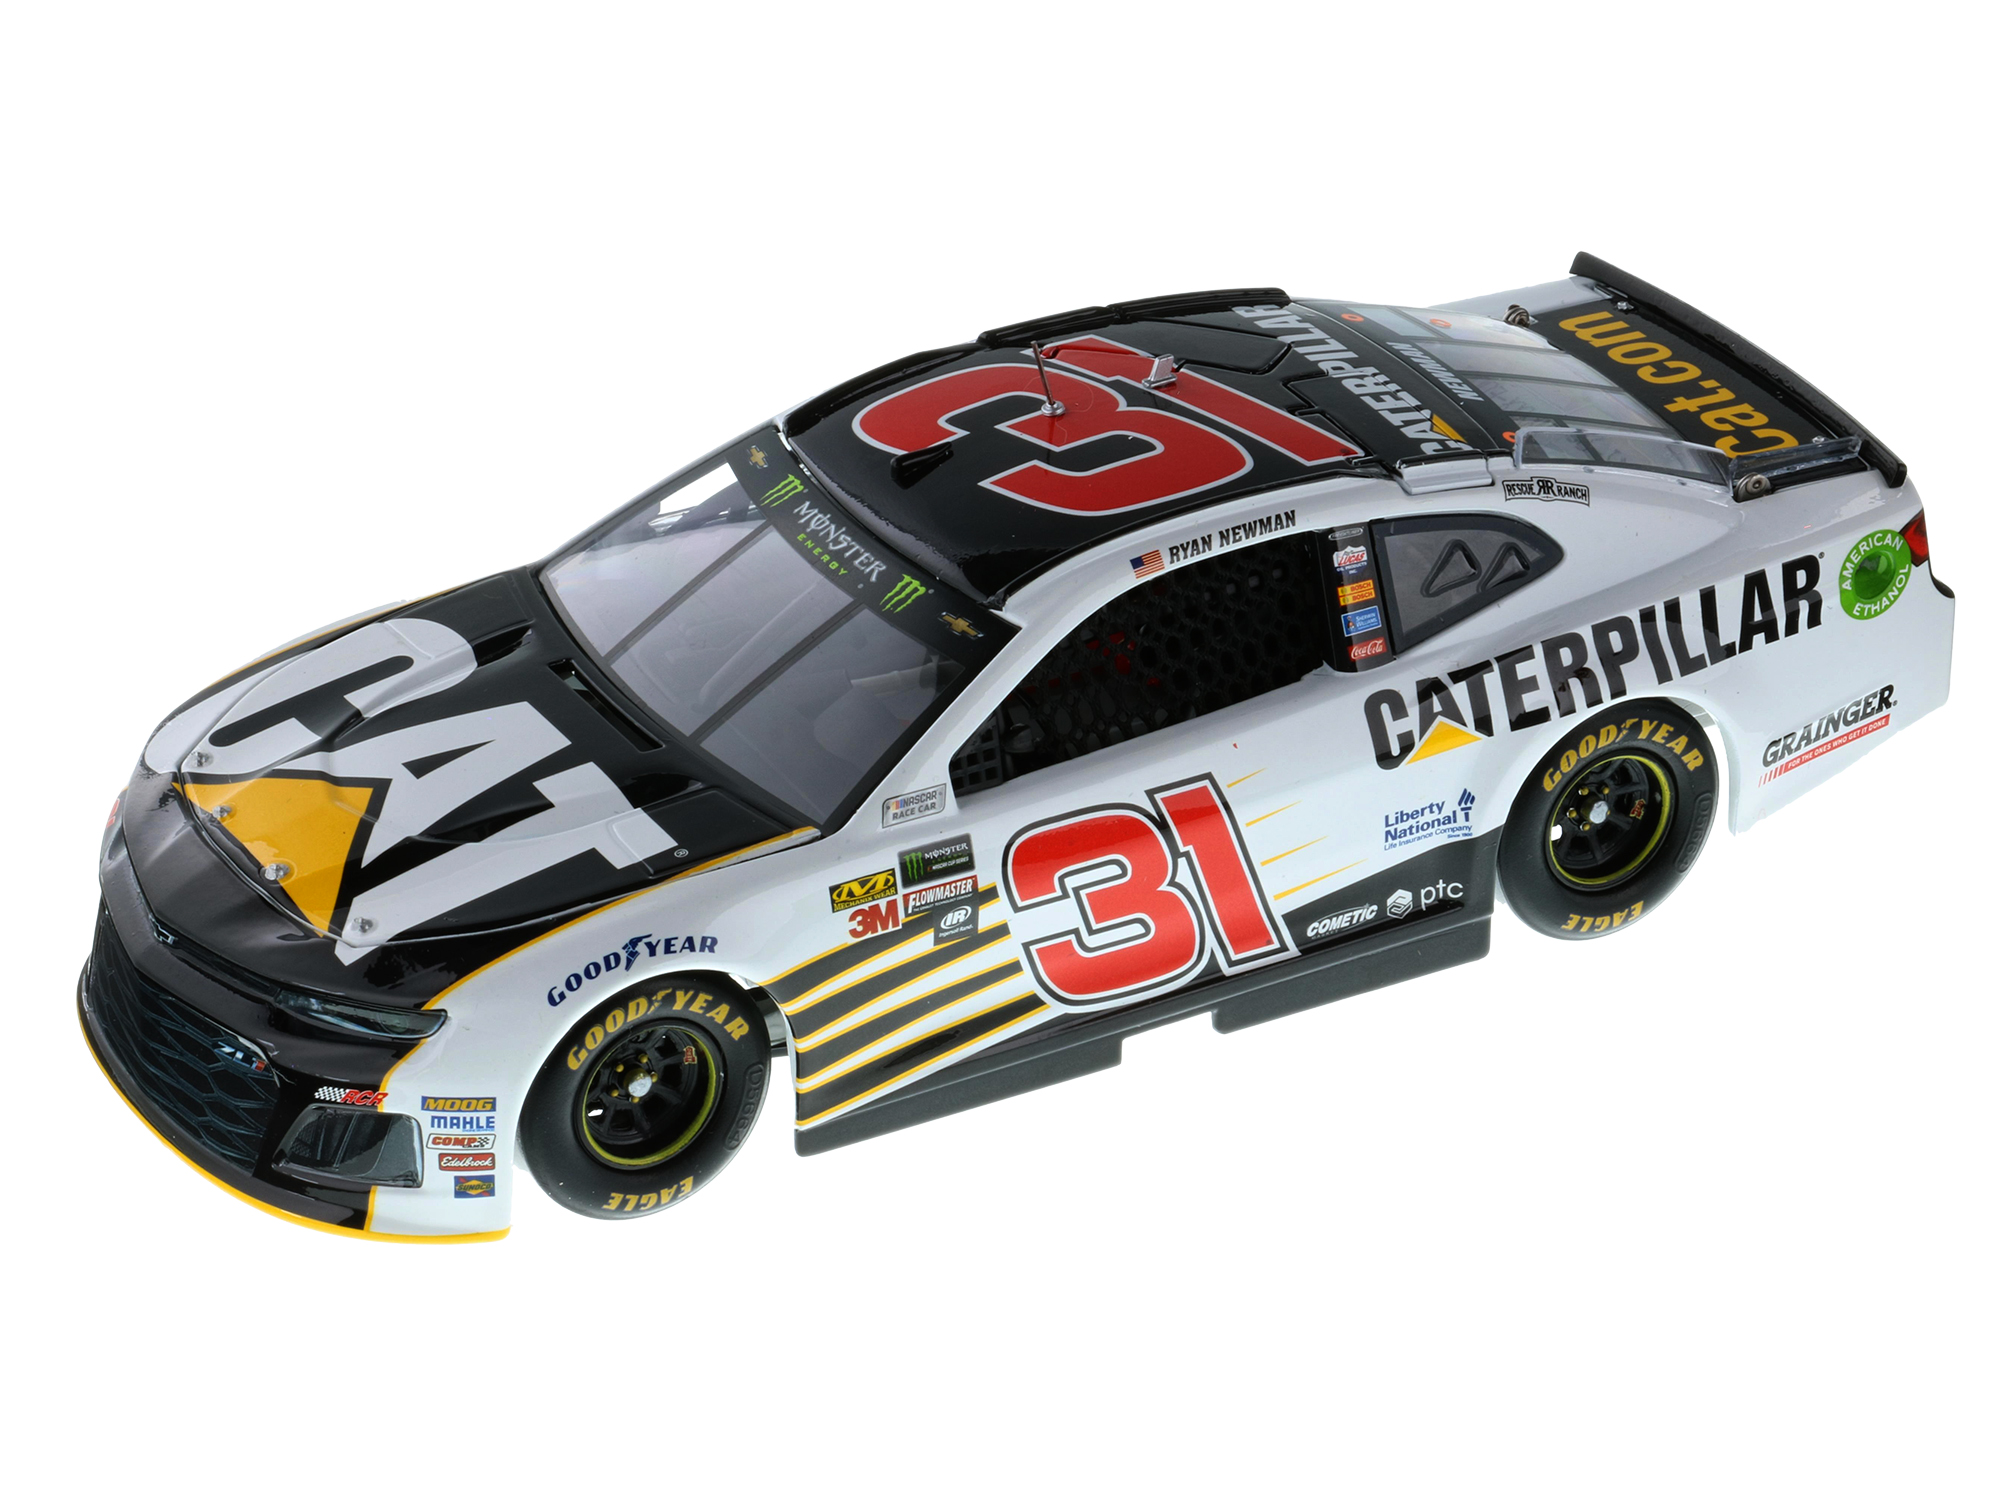 RYAN NEWMAN 2018 CATERPILLAR 1:24 ELITE DIECAST